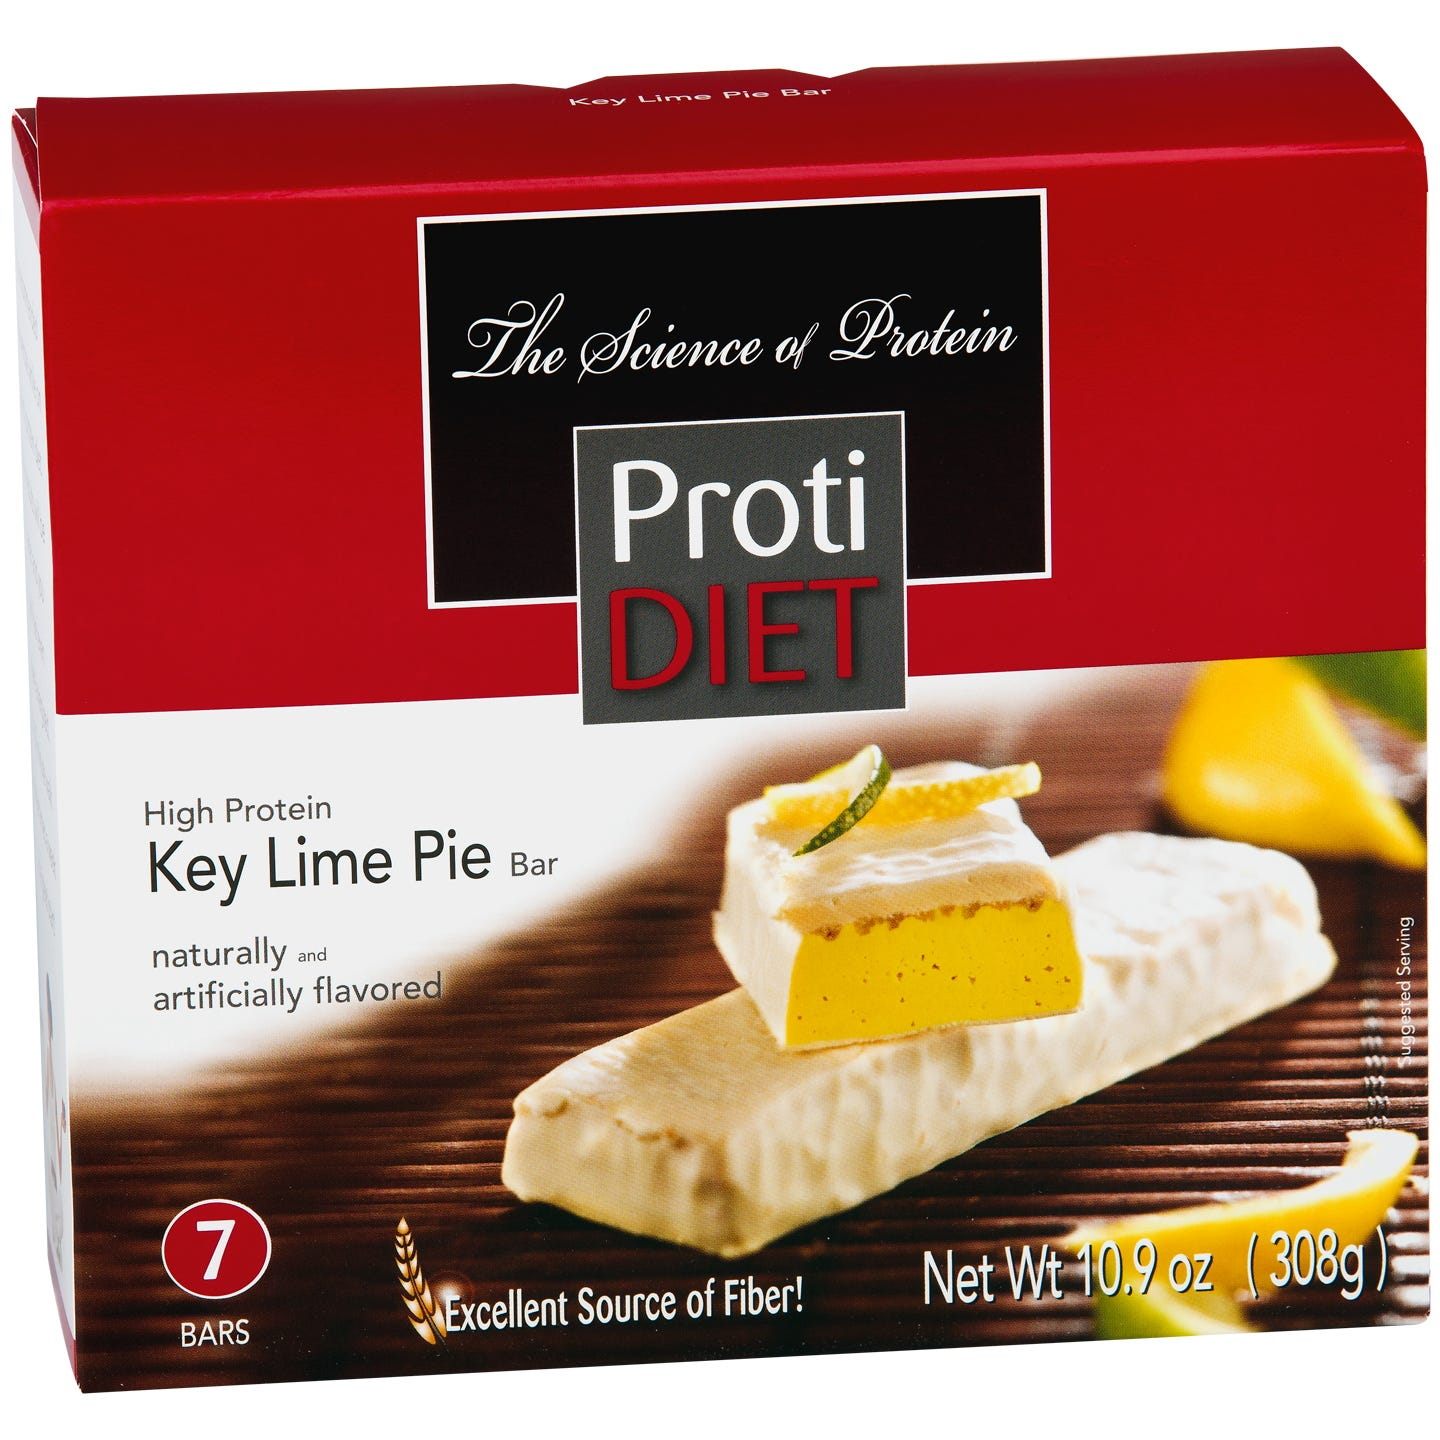 ProtiDiet High Fiber Protein Bars - Key Lime Pie